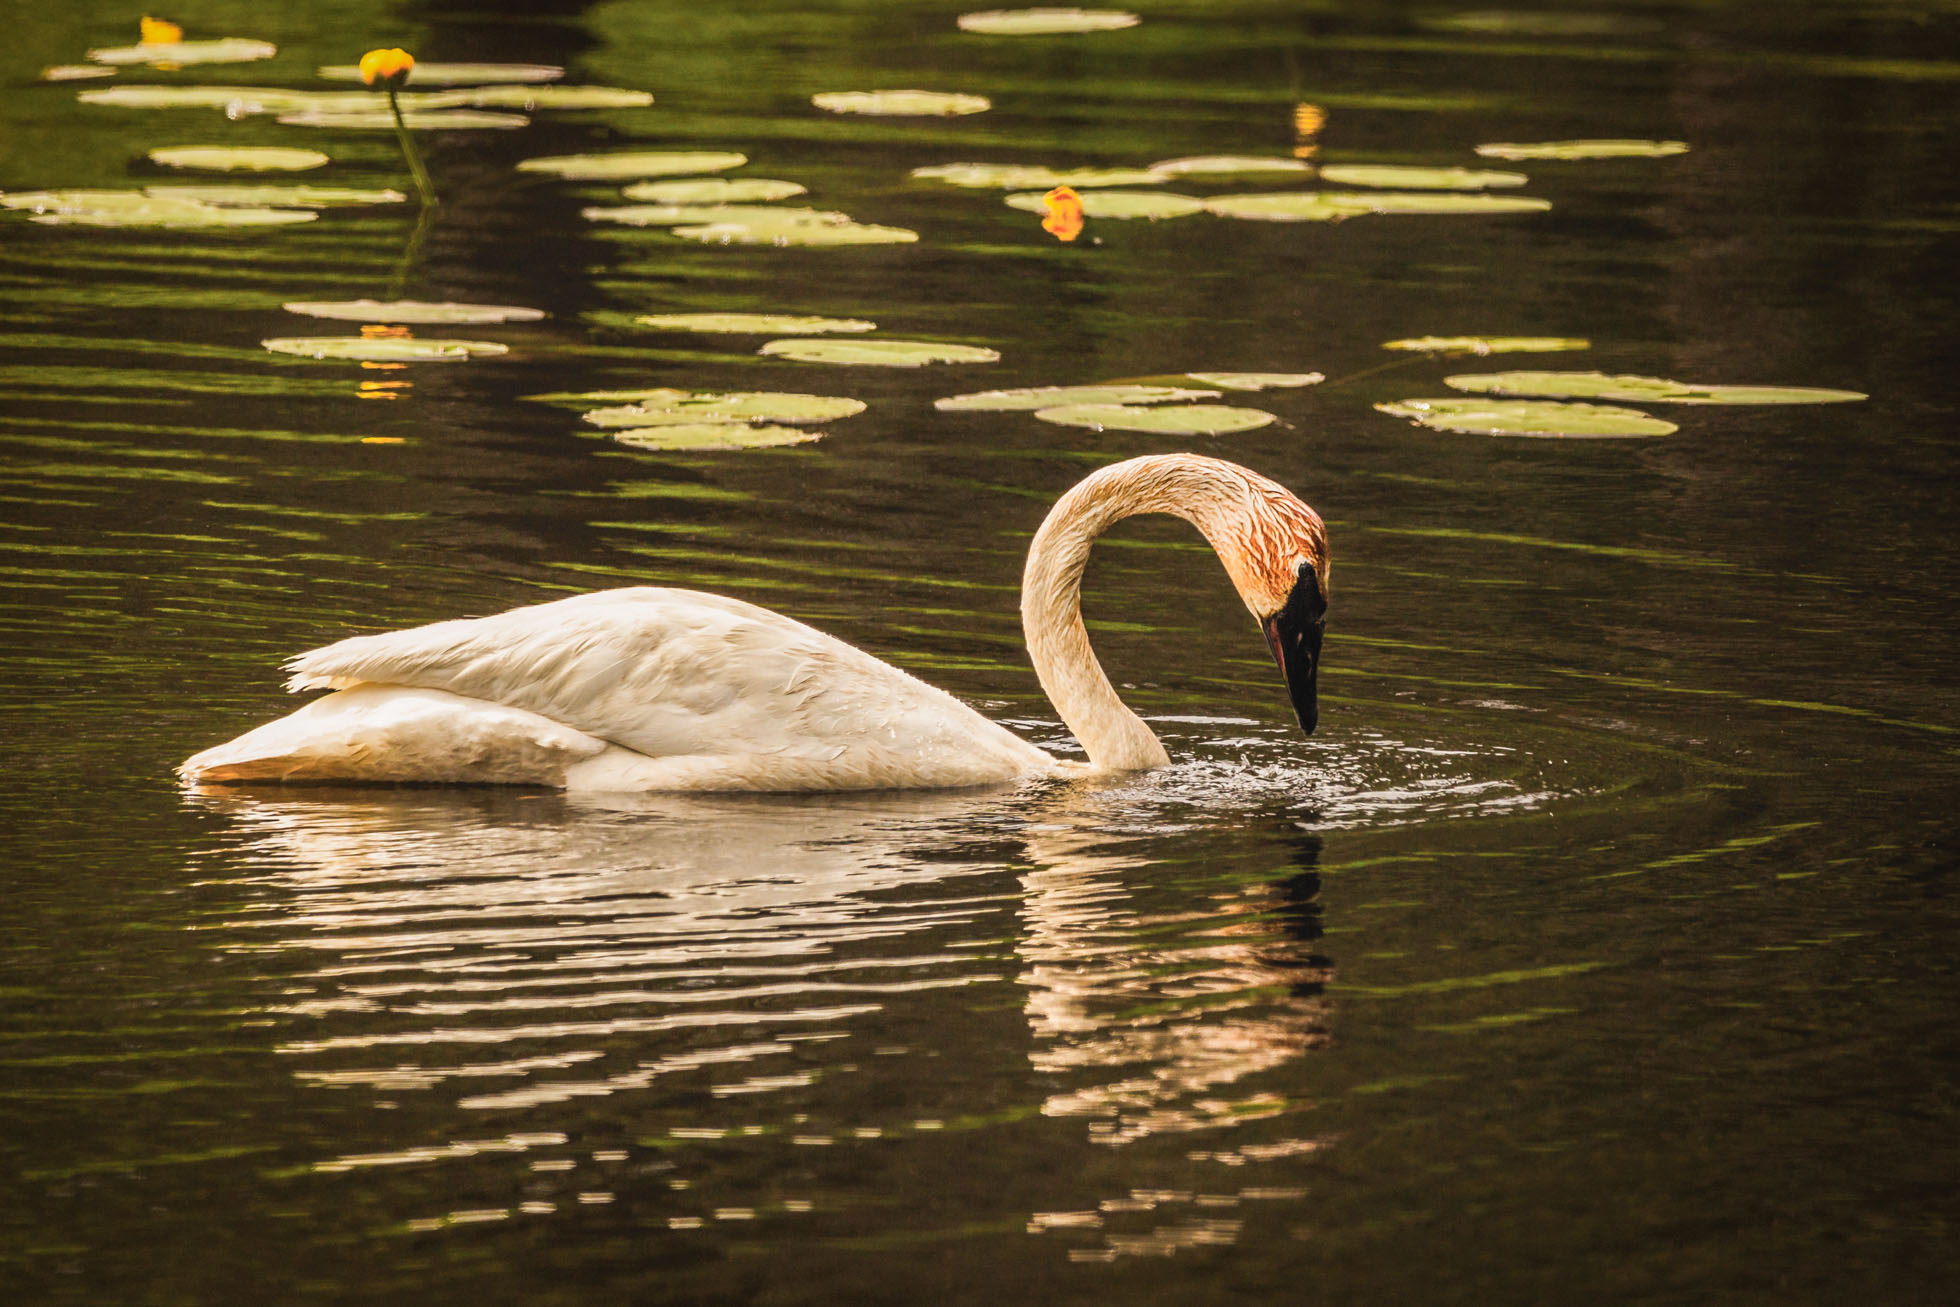 The swans spend most of their time foraging for food under water.